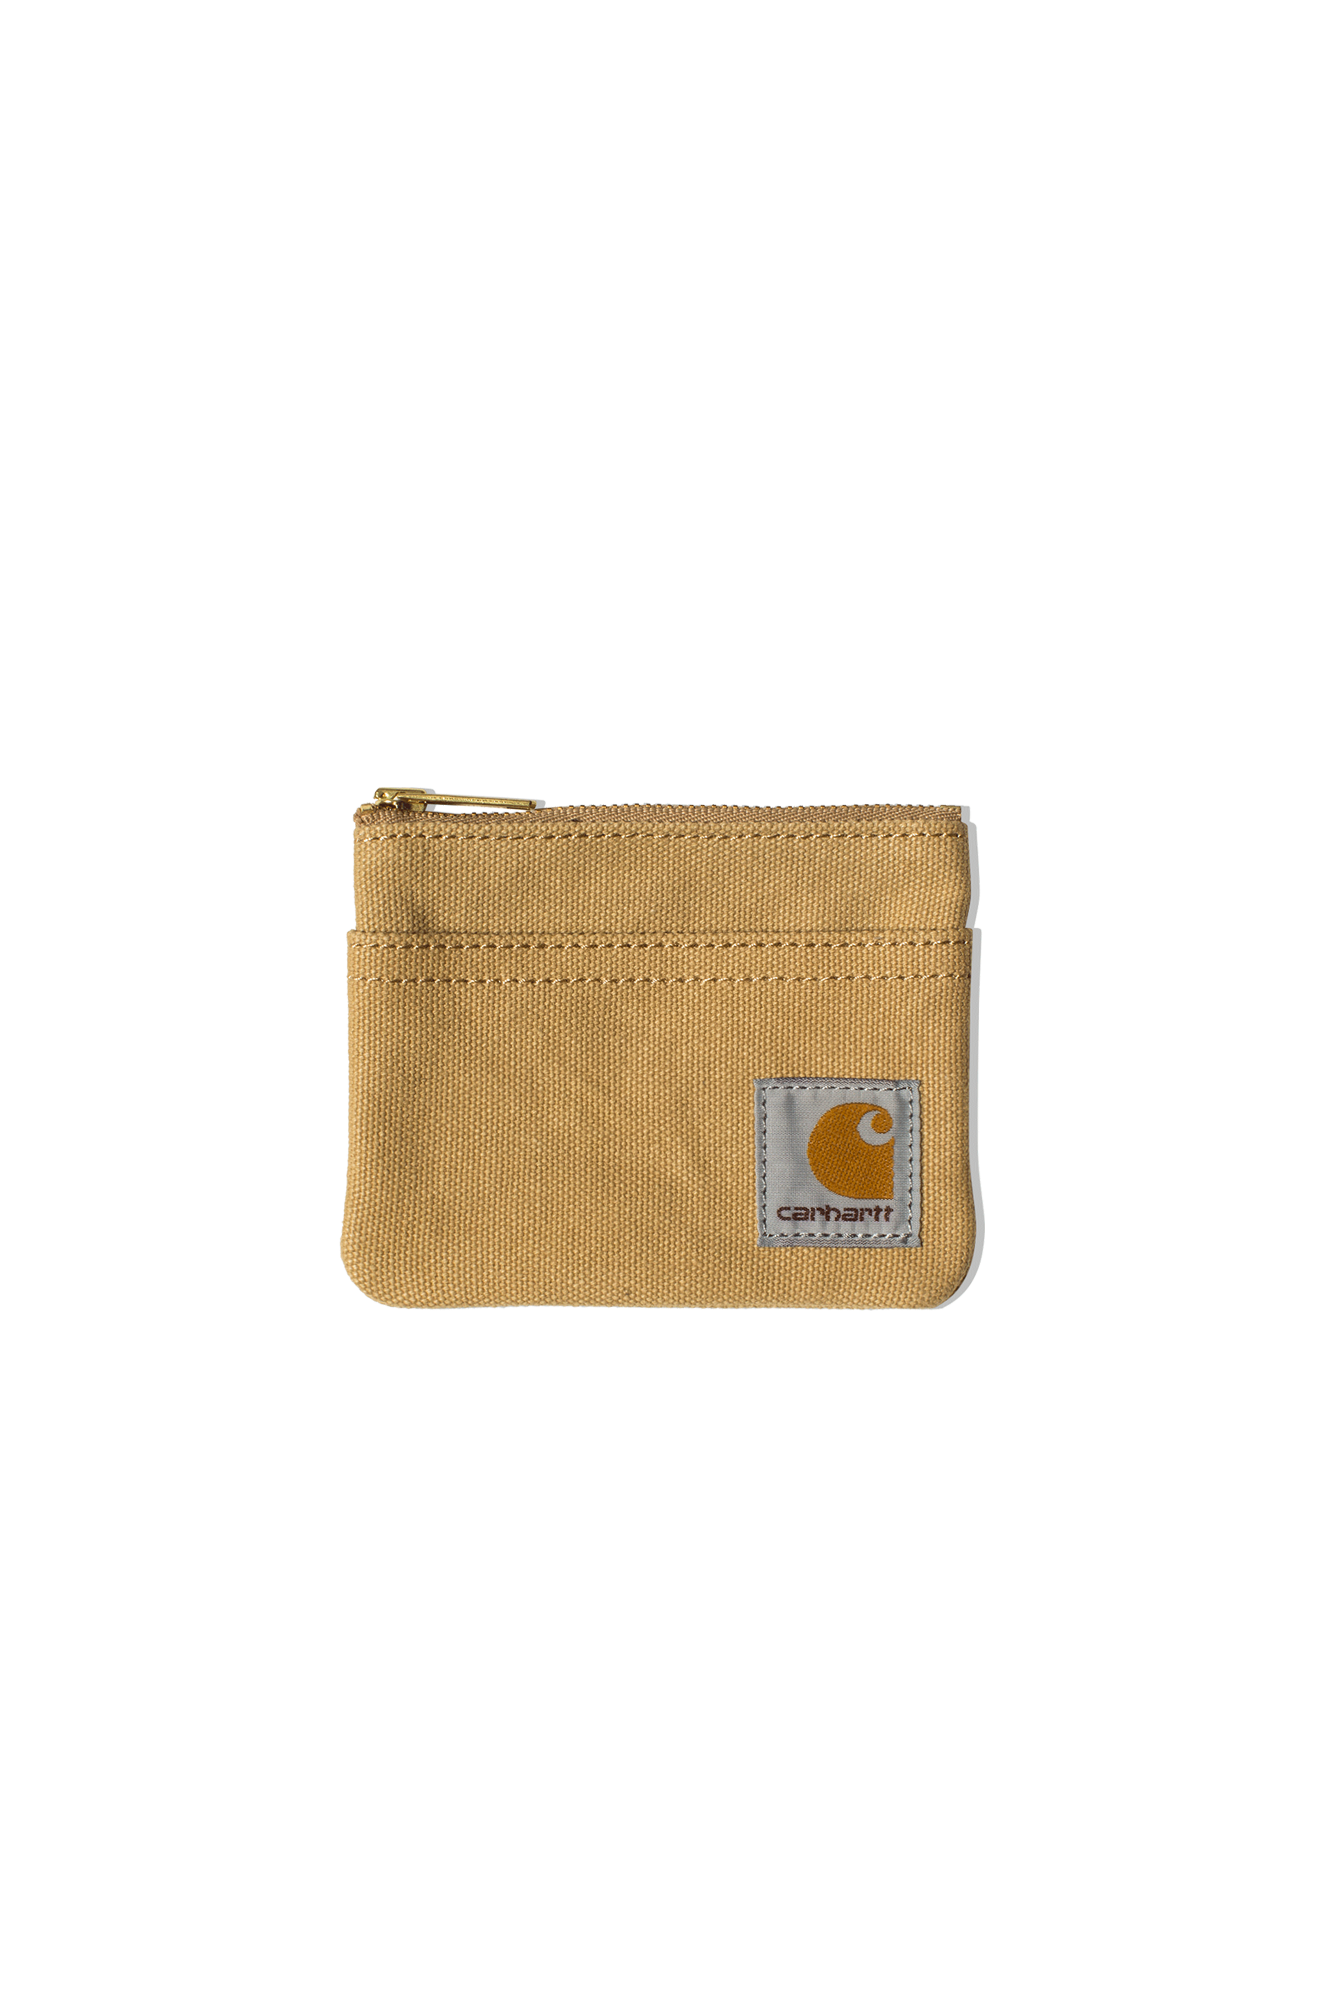 Carhartt Portafogli Canvas Wallet Marrone I028887.06#000#07E.90#OS - One Block Down